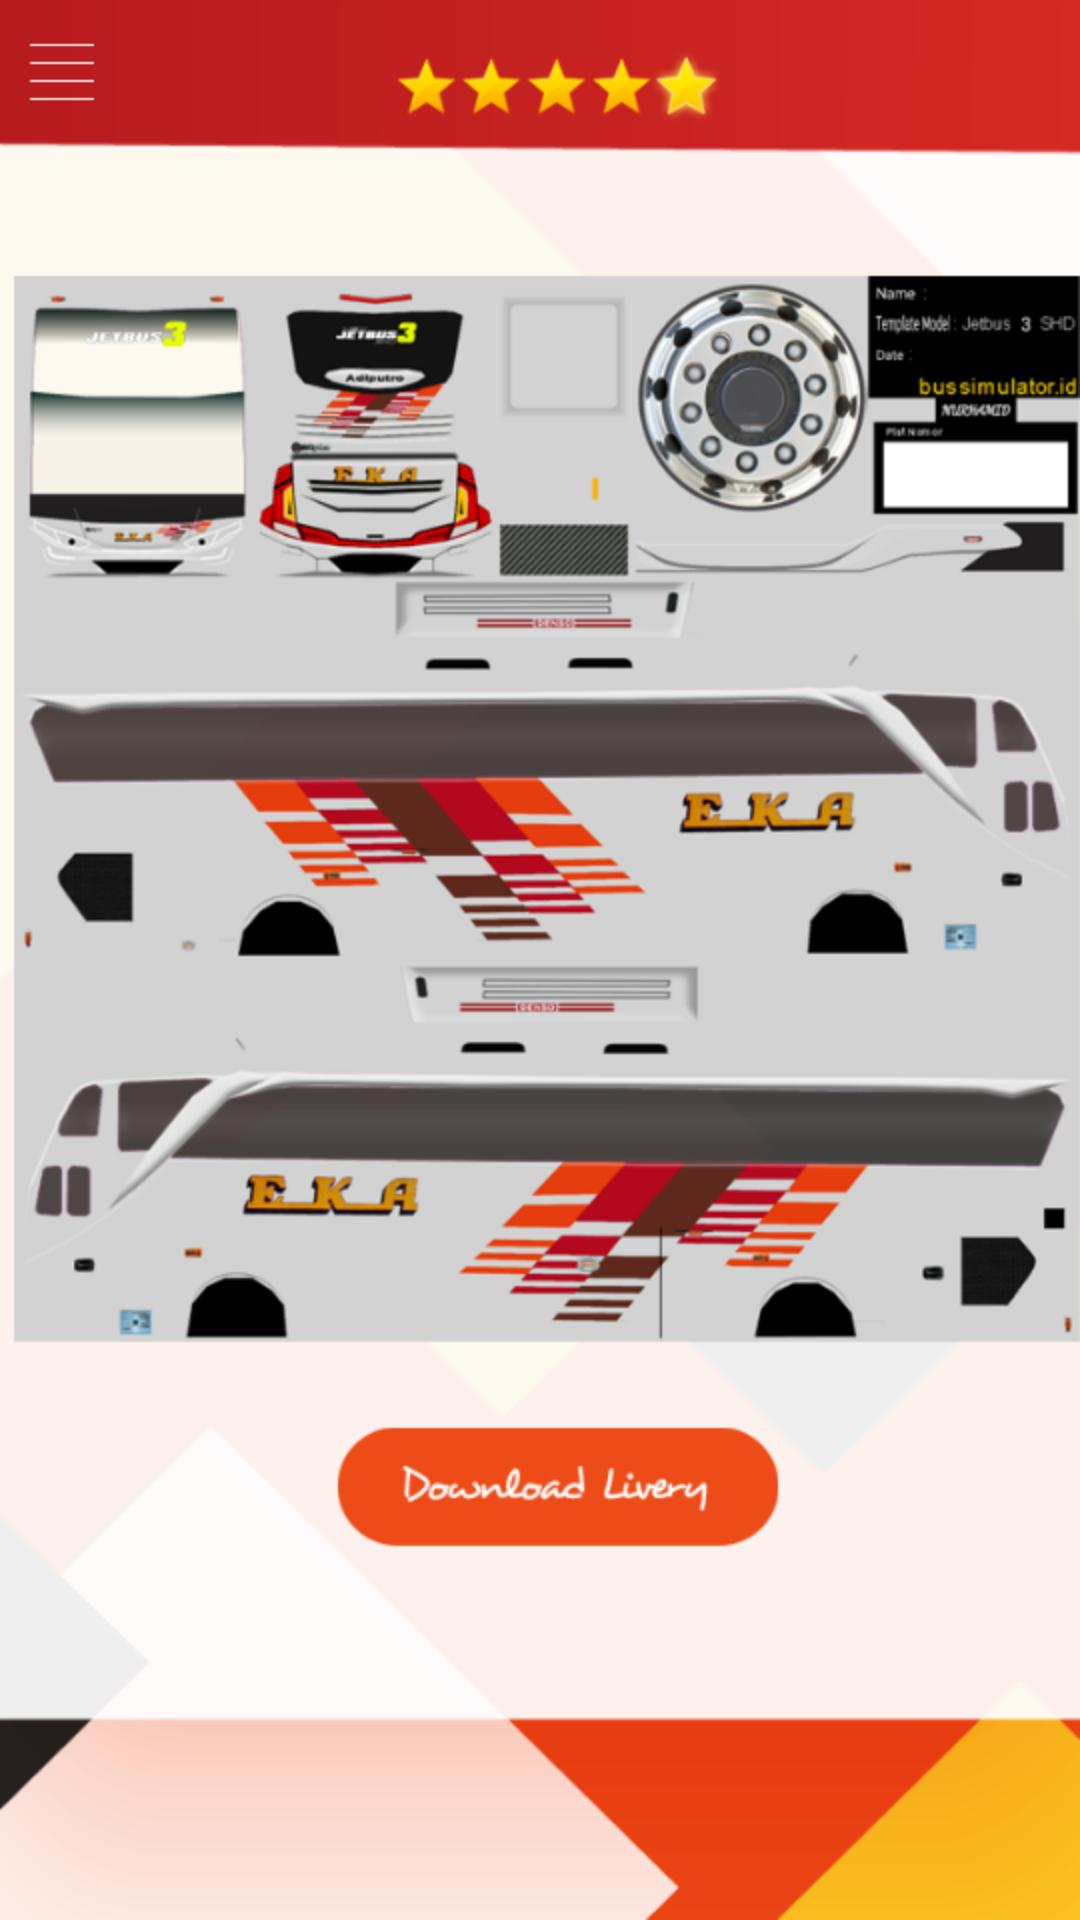 Livery Bus Efisiensi Shd For Android Apk Download